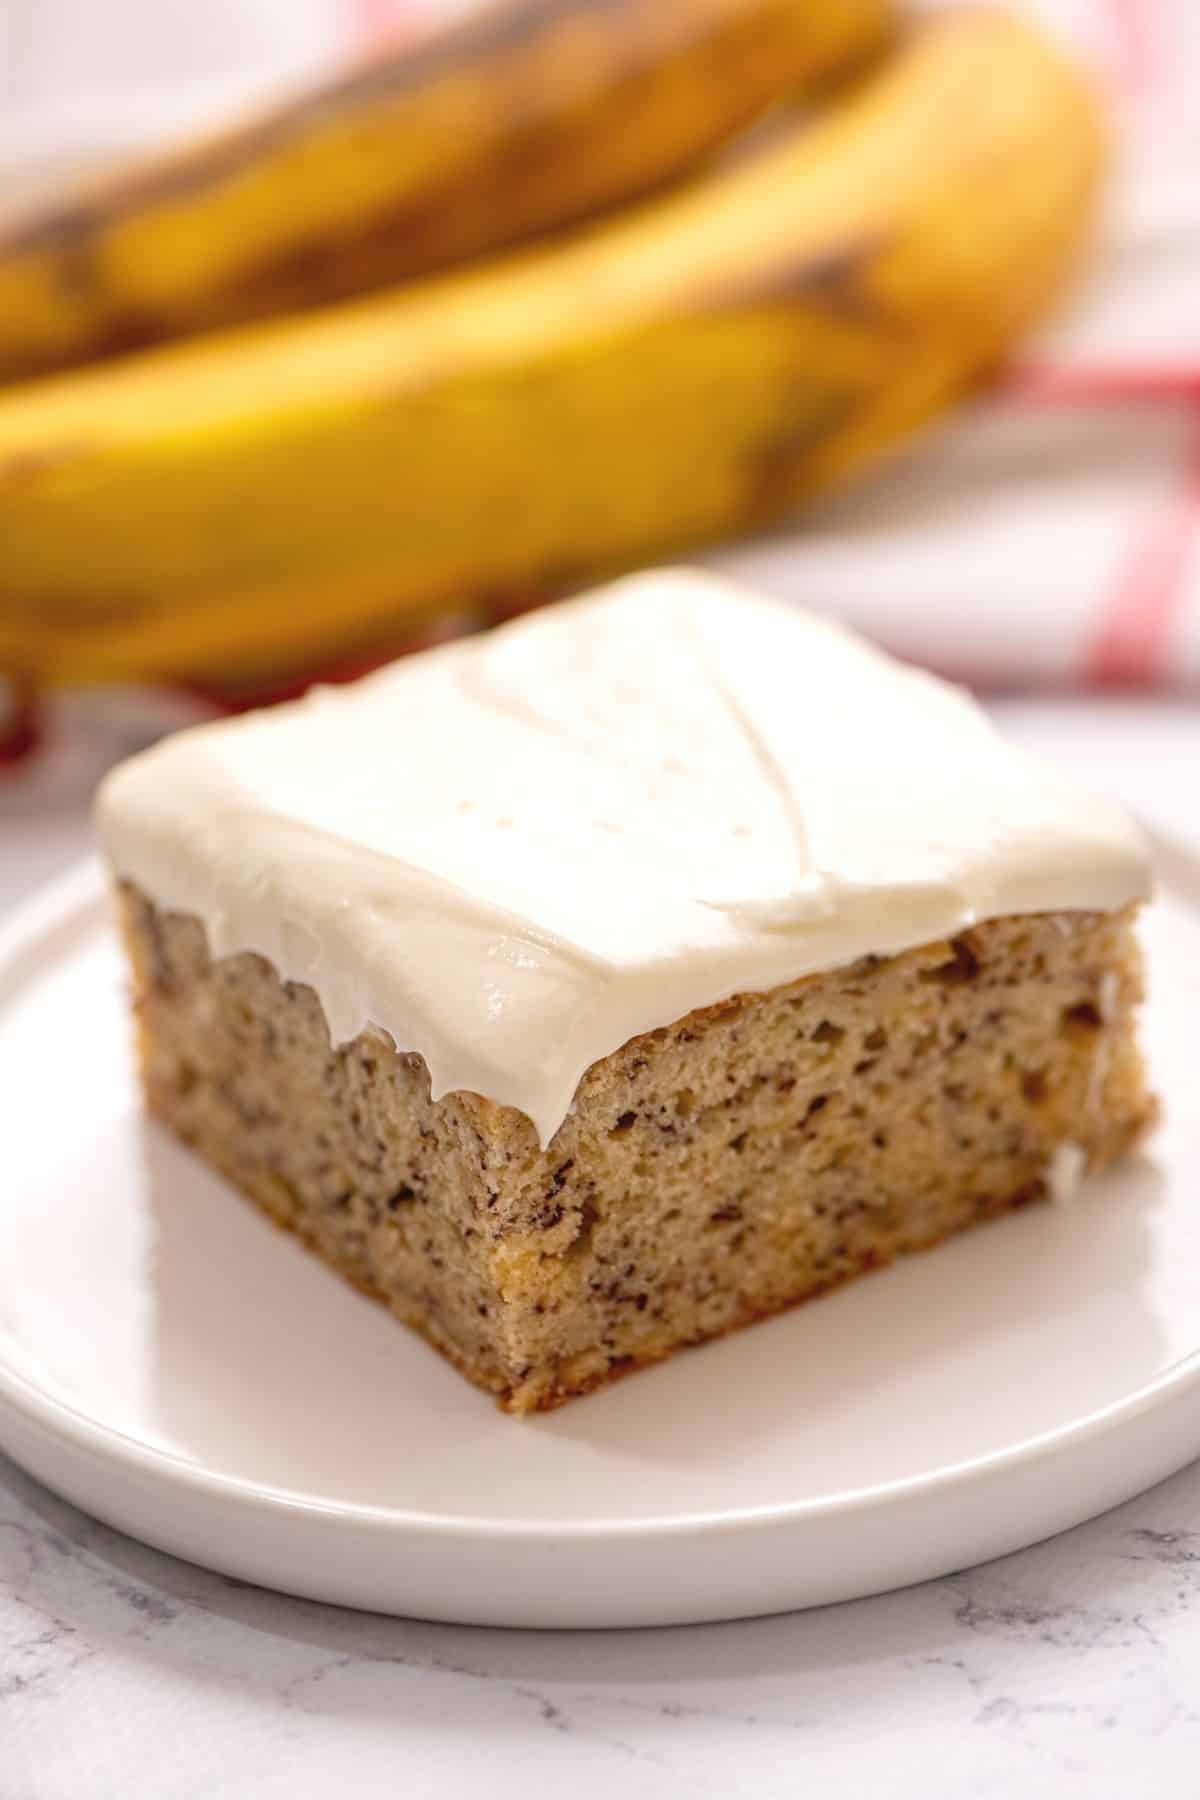 Slice of banana cake with cream cheese frosting on white plate.